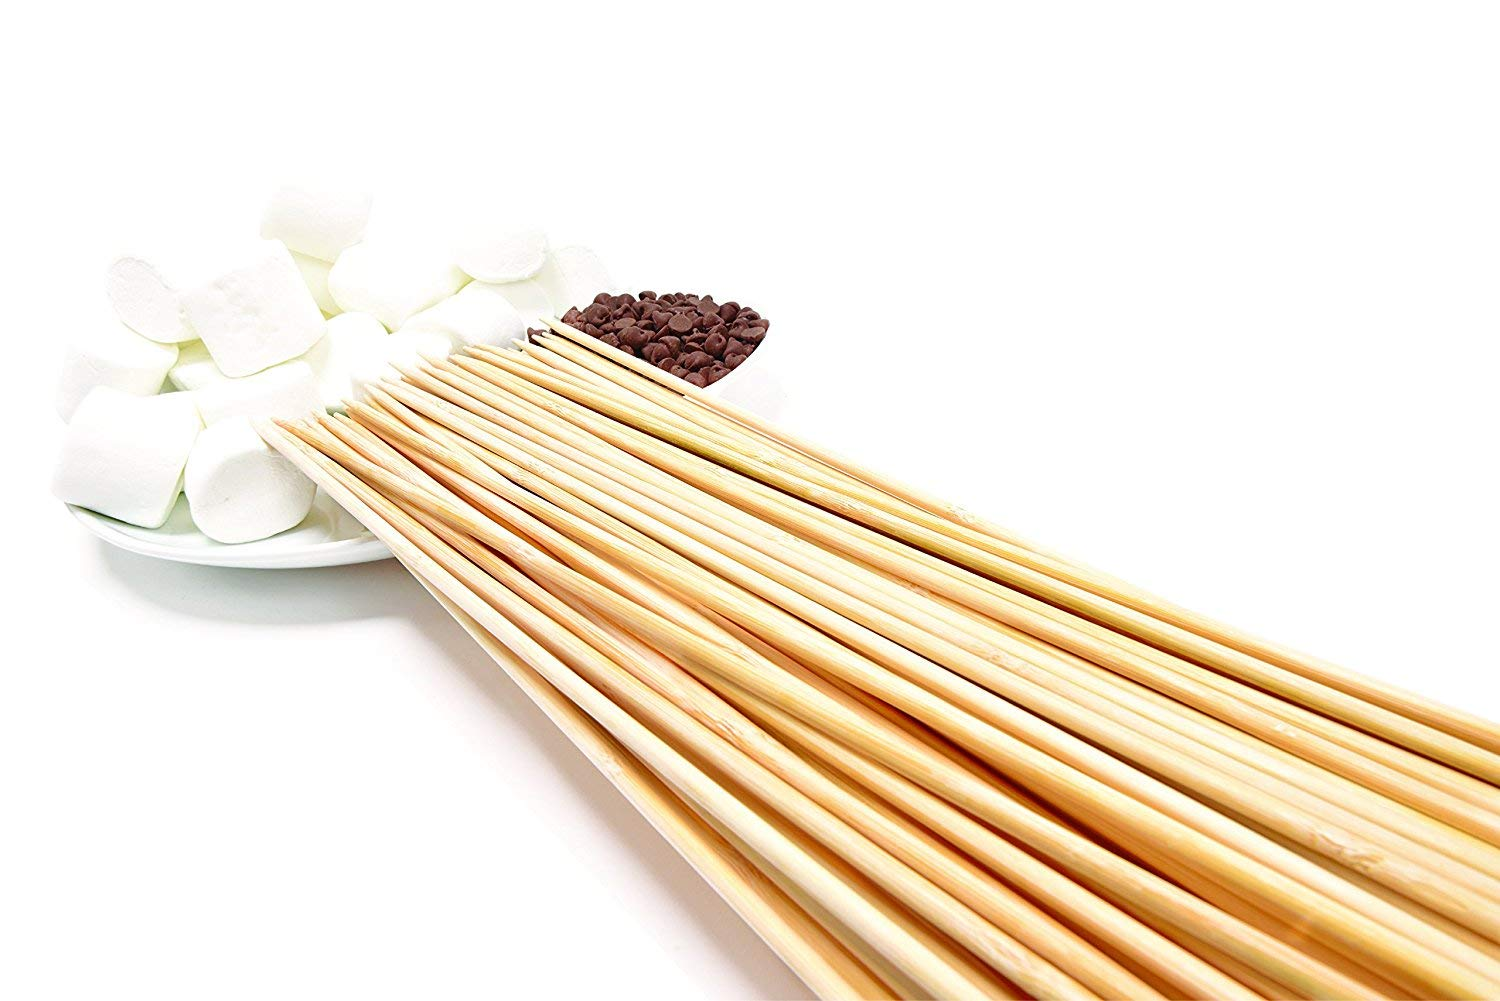 YEZZ Bamboo Marshmallow Roasting Sticks with 24 inch 5mm Thick Extra Long Heavy Duty Wooden Skewers, Roaster Barbecue Smores Skewers & Hot Dog Forks for Camping,Kebab Sausage by YEZZ